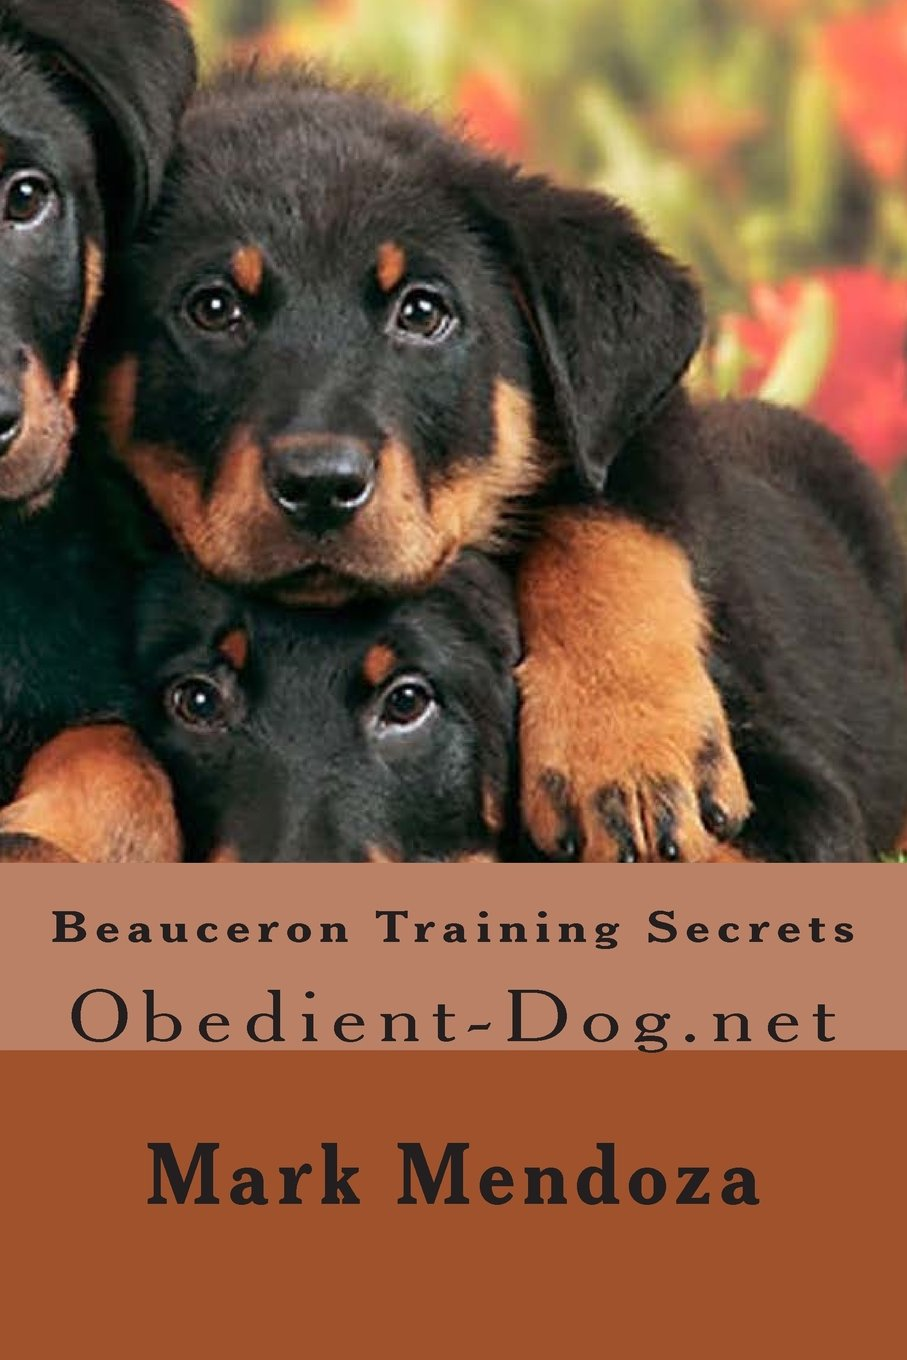 Beauceron Training Secrets: Obedient-Dog.net